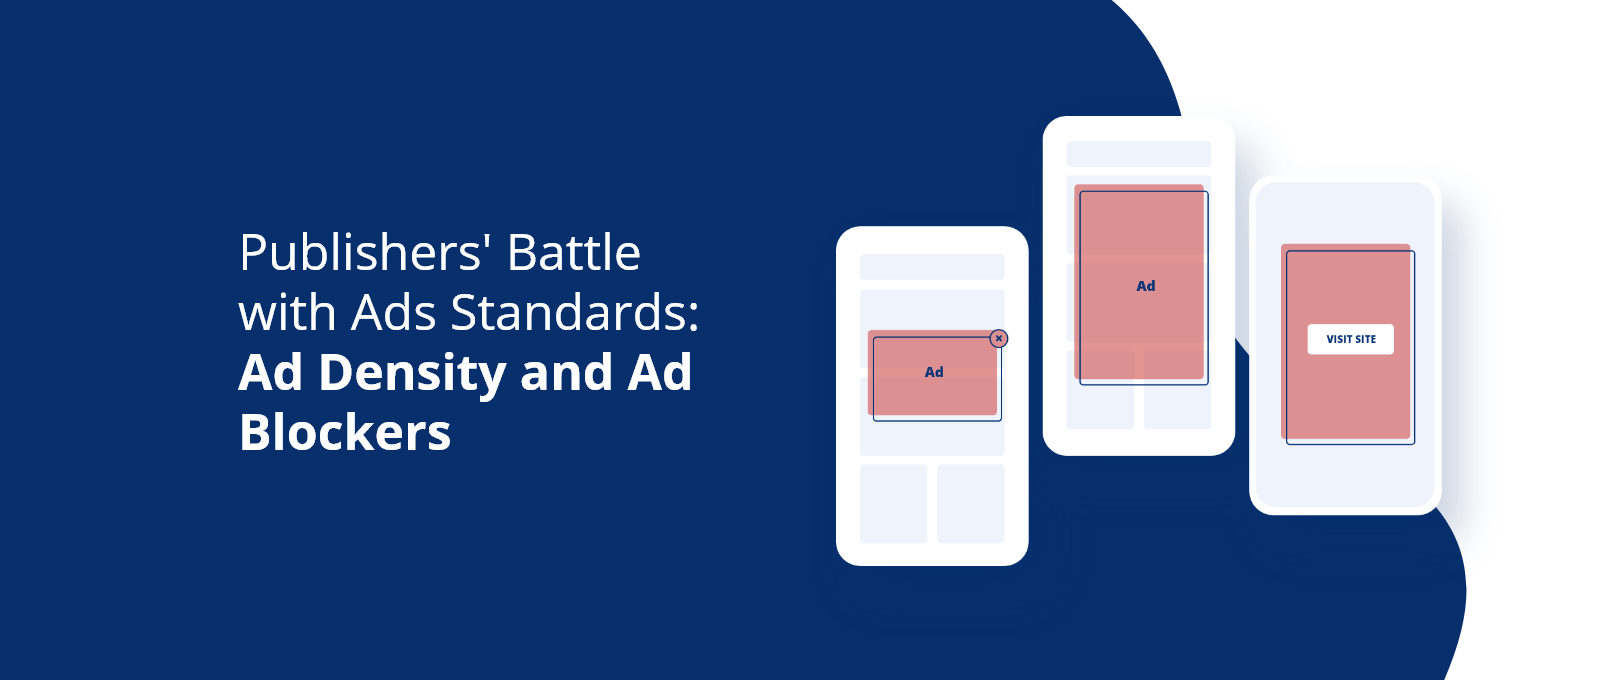 Publishers' Battle with Ads Standards: Ad Density and Ad Blockers